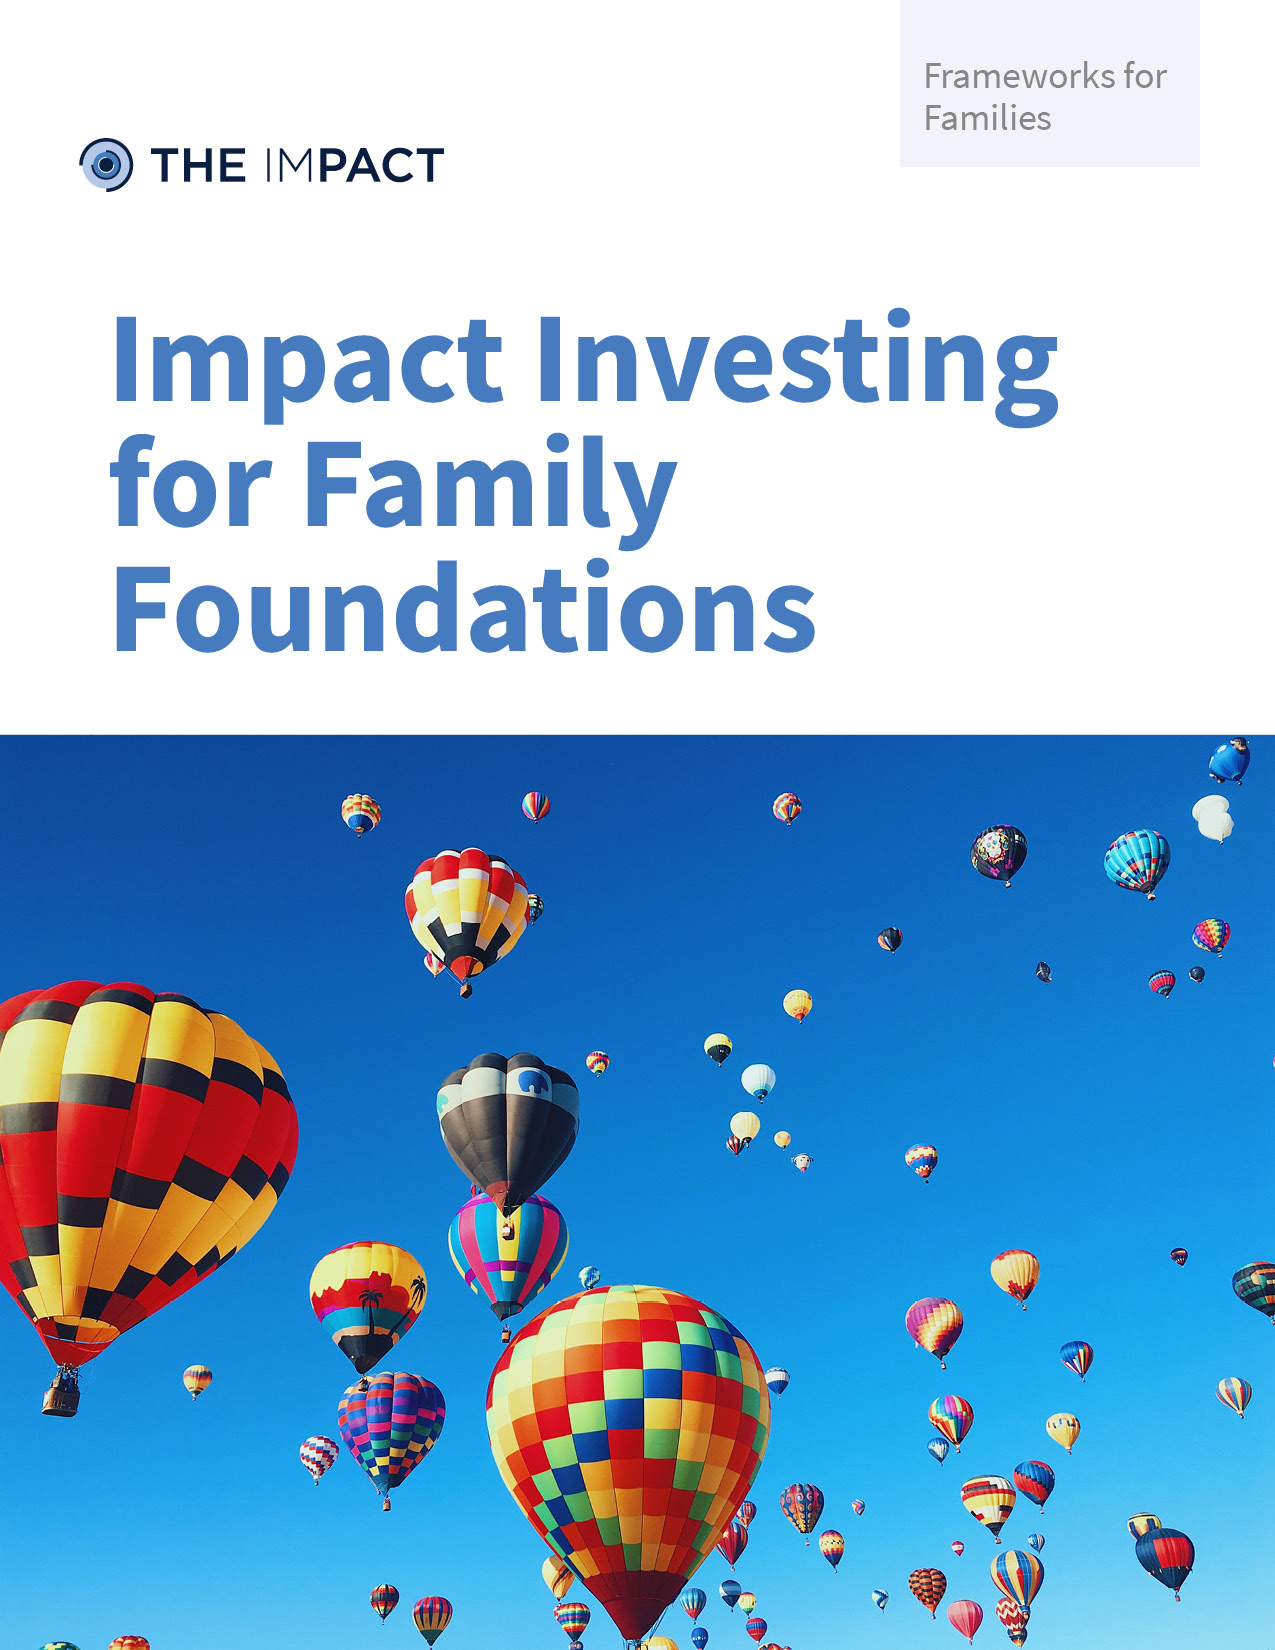 Impact Investing for Family Foundations. A framework for families by The ImPact.